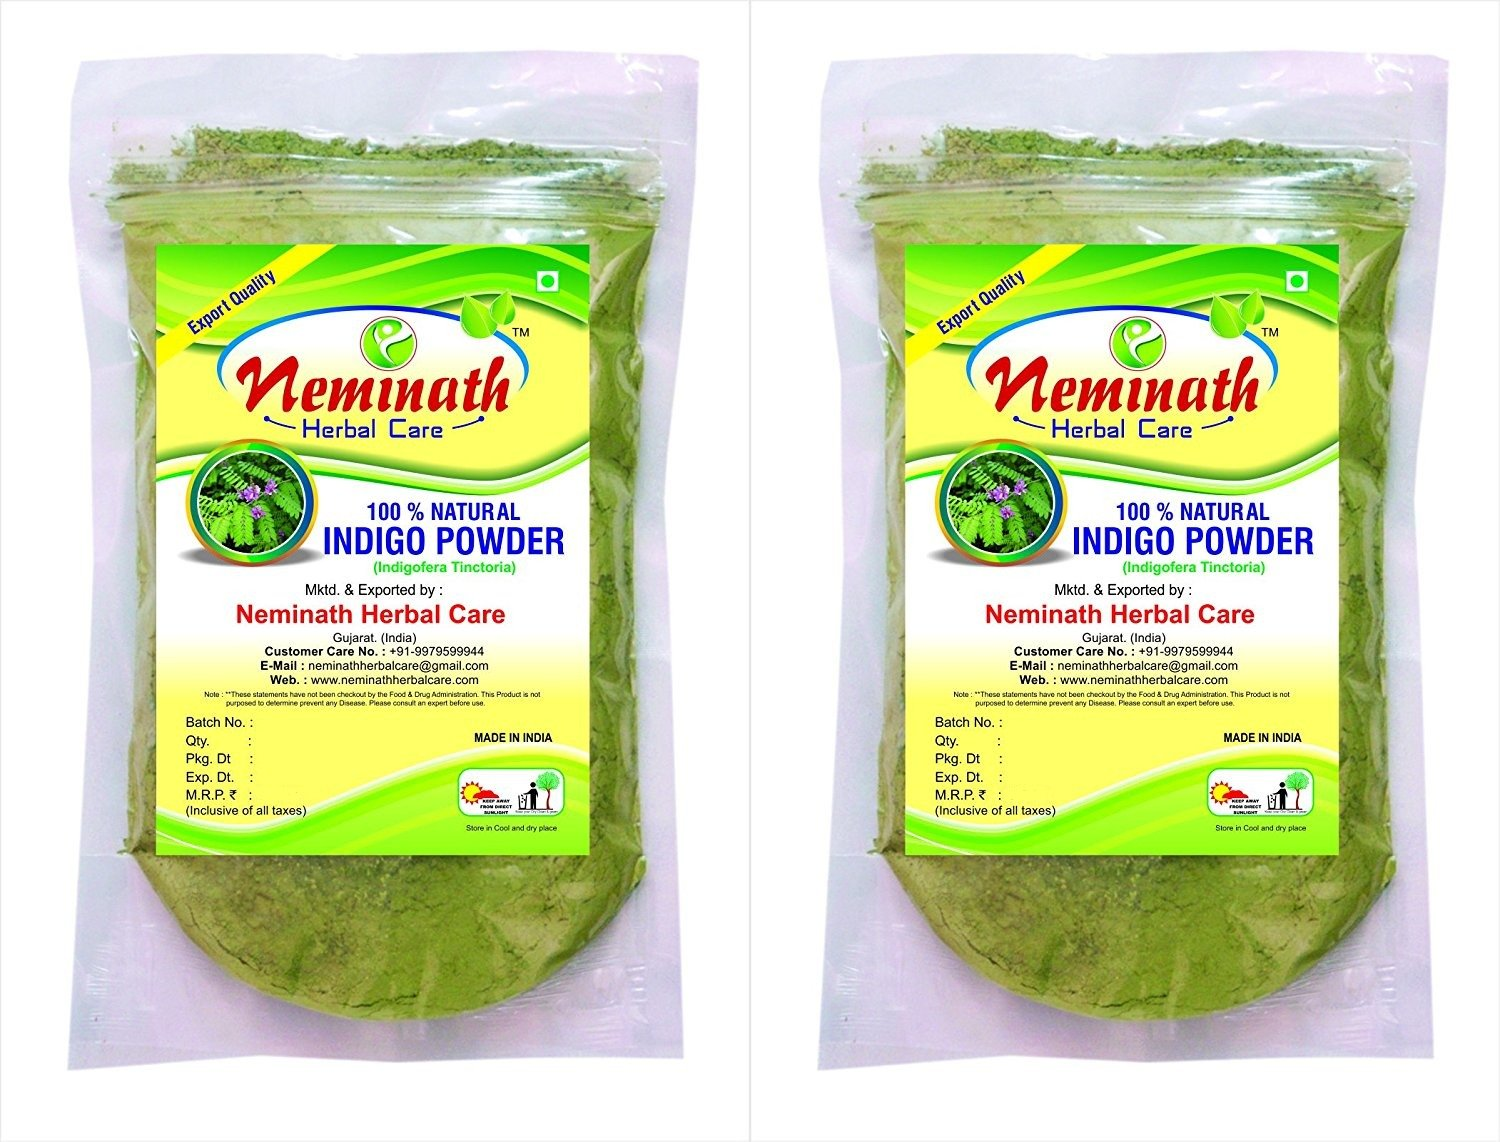 100% Natural Indigo Leaves (Indigofera Tinctoria) Powder Combo As Hair Colorant Naturally (454g) Neminath Herbal